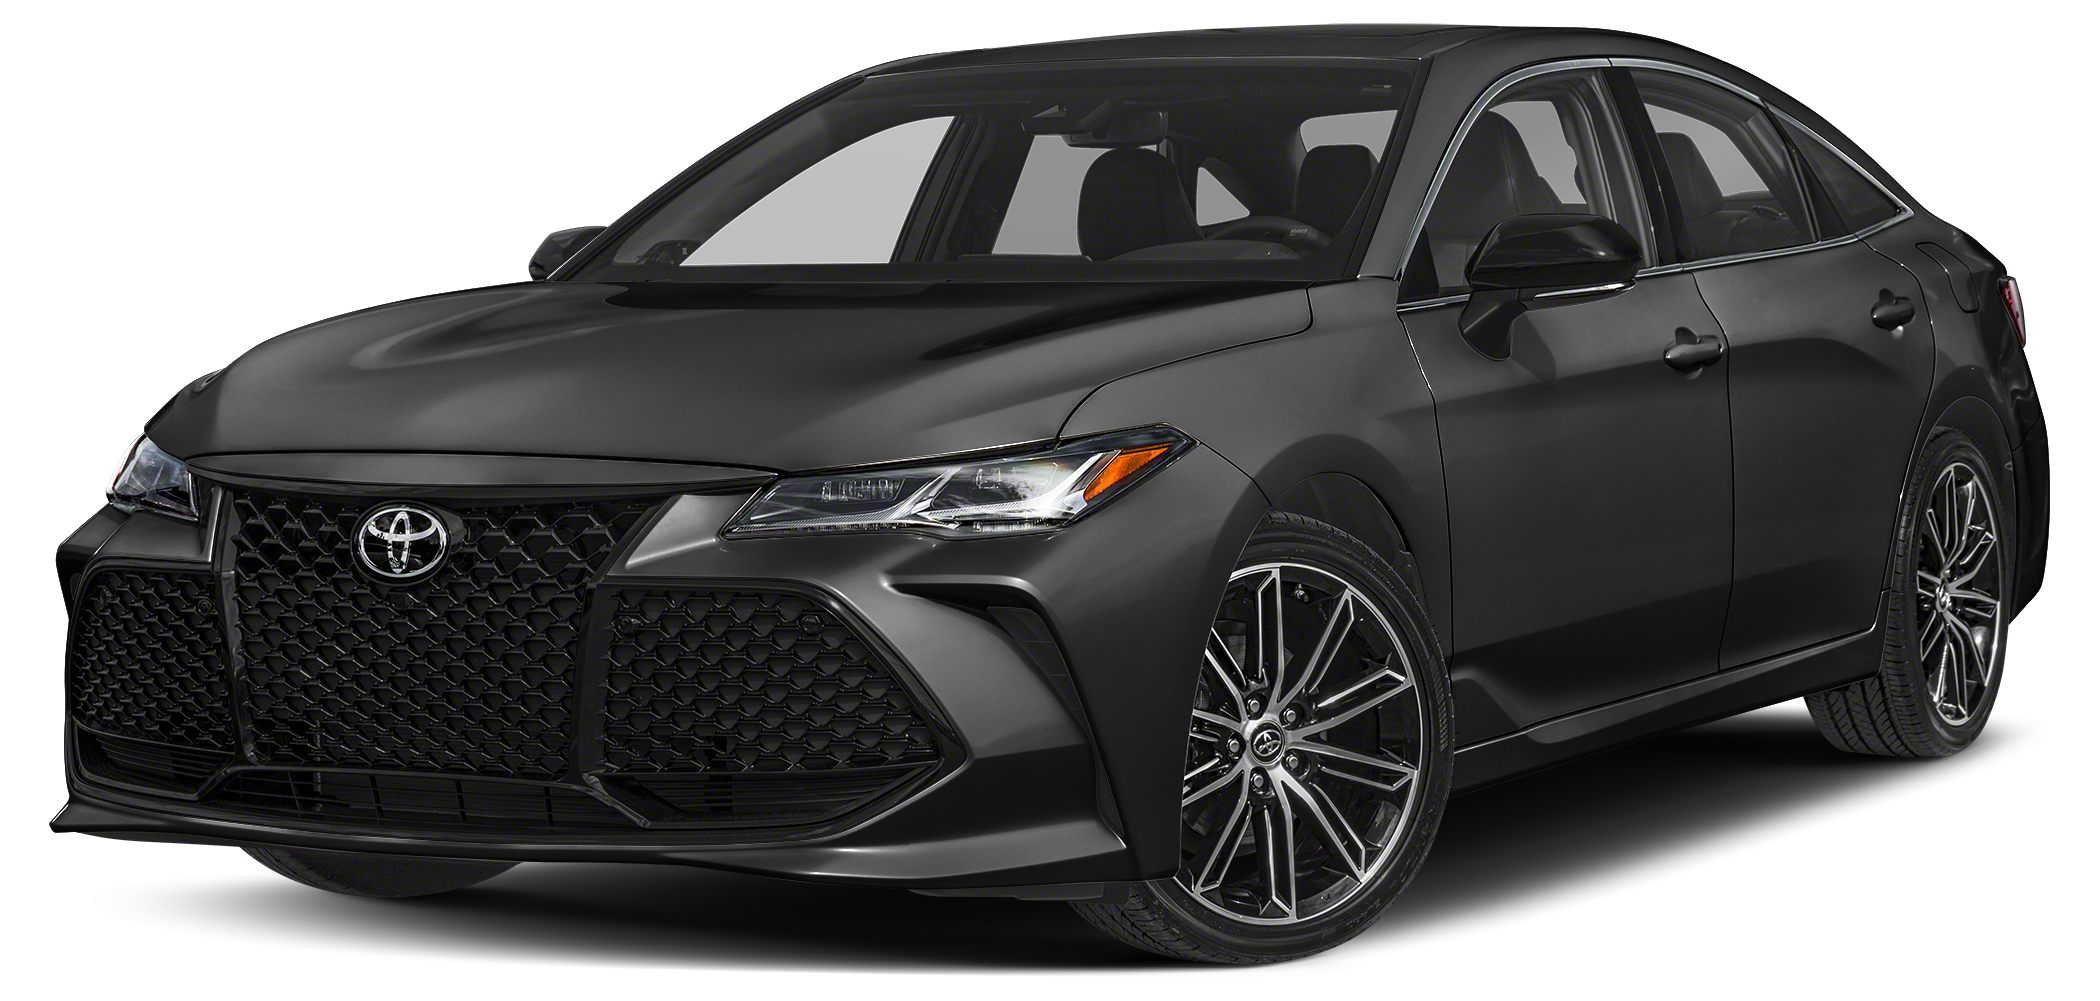 2019 Toyota Avalon Limited This 2019 Toyota Avalon 4dr Limited features a 35L V6 Cylinder 6cyl Ga